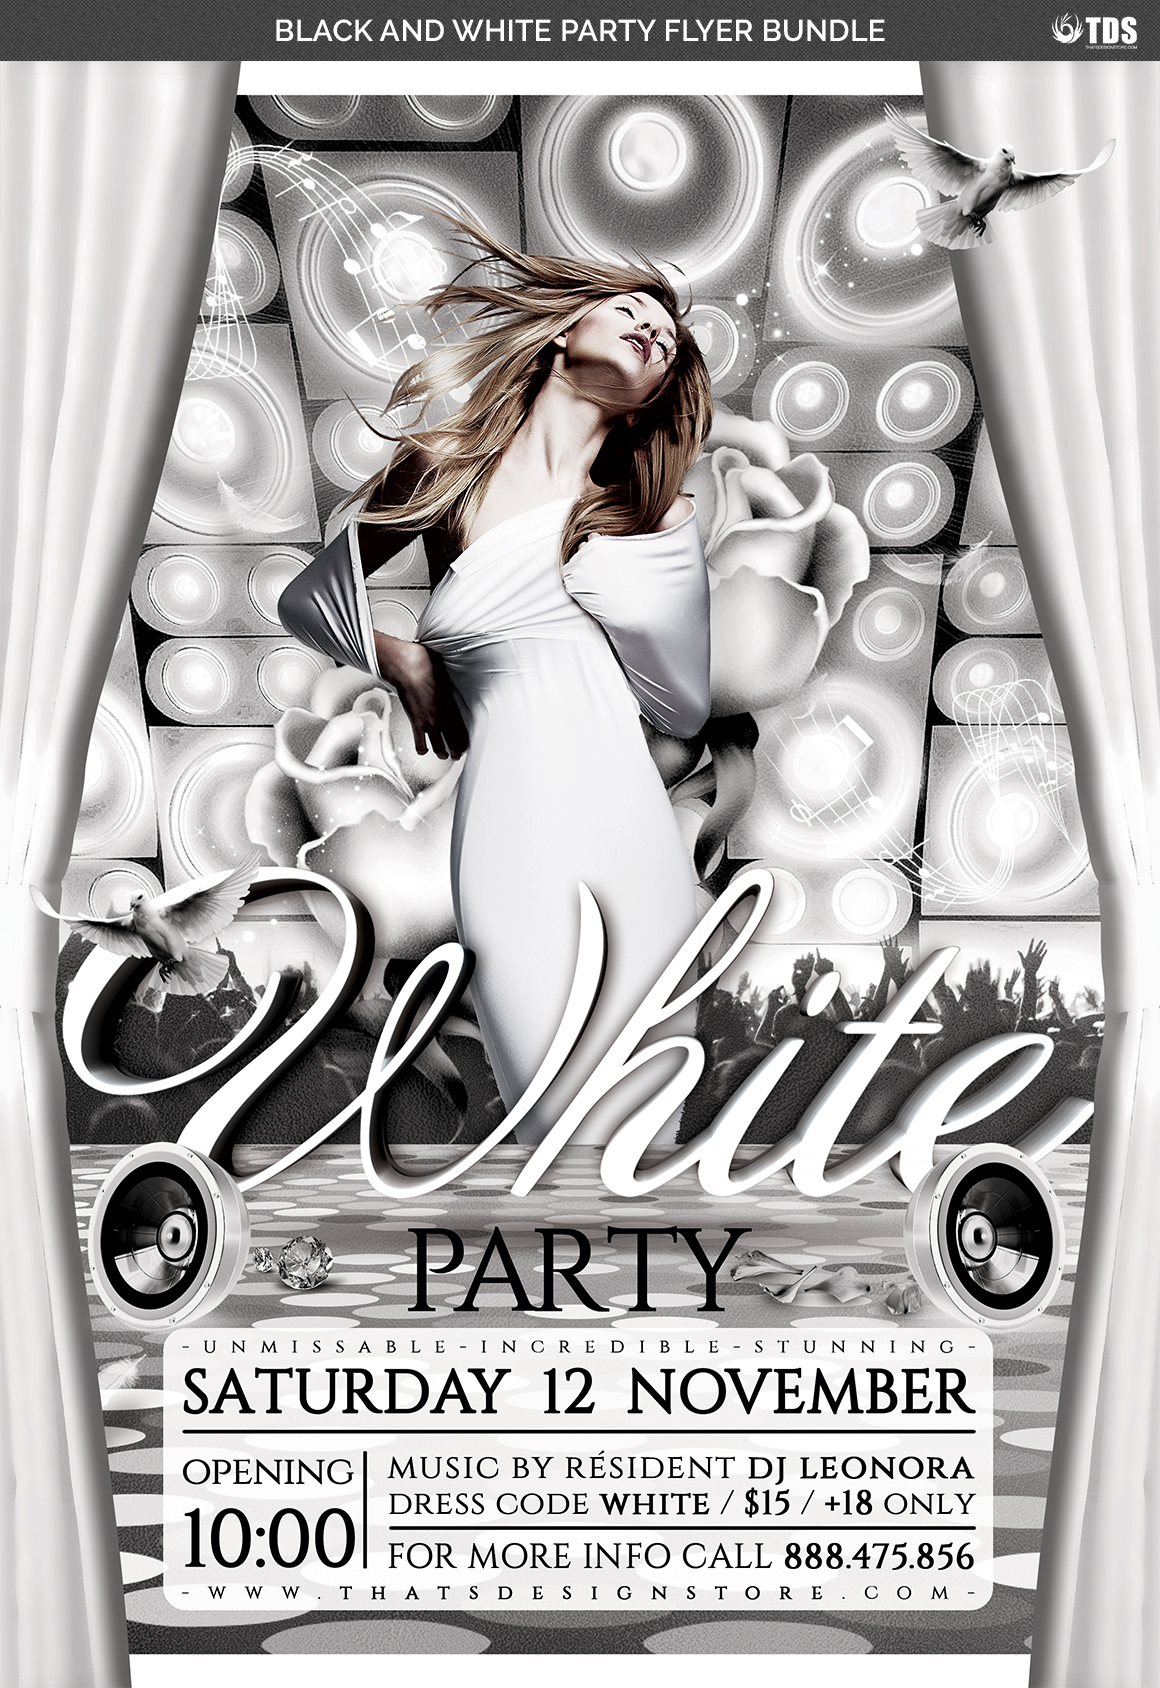 Black and White Party Flyer Bundle example image 5